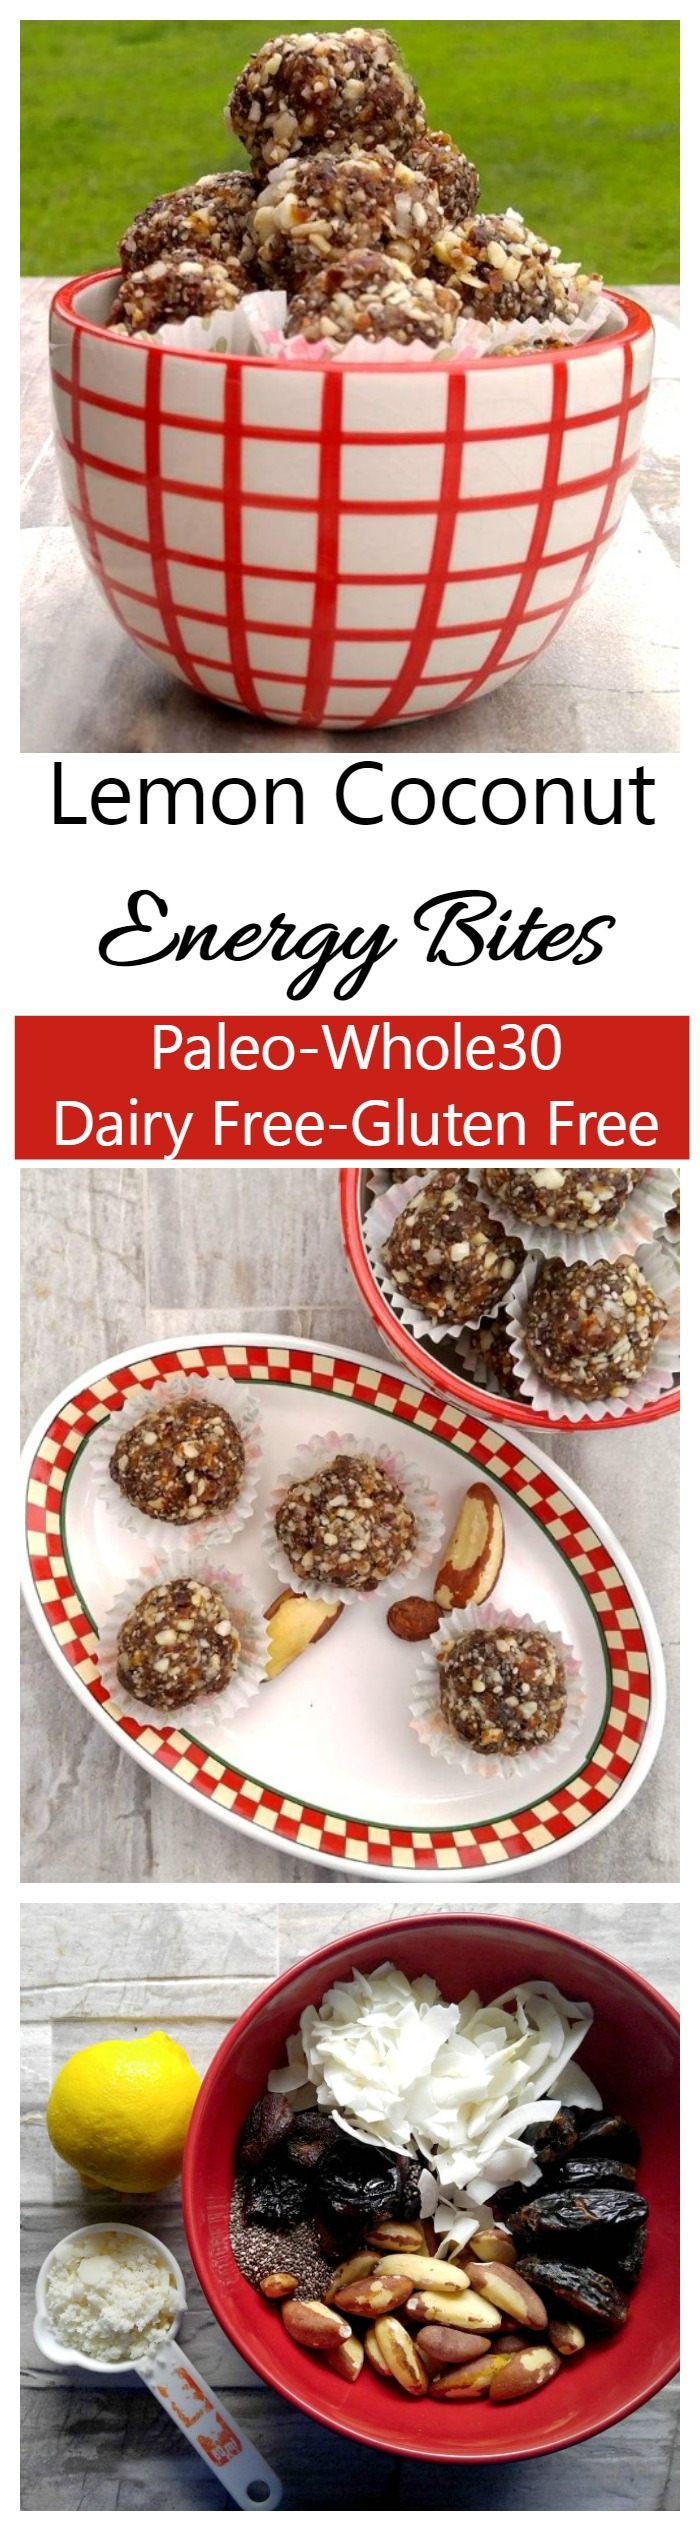 These delicious lemon coconut energy bites are perfect for a snack or light dessert. They are Paleo, Whole30 compliant and gluten and dairy free. So tasty too!